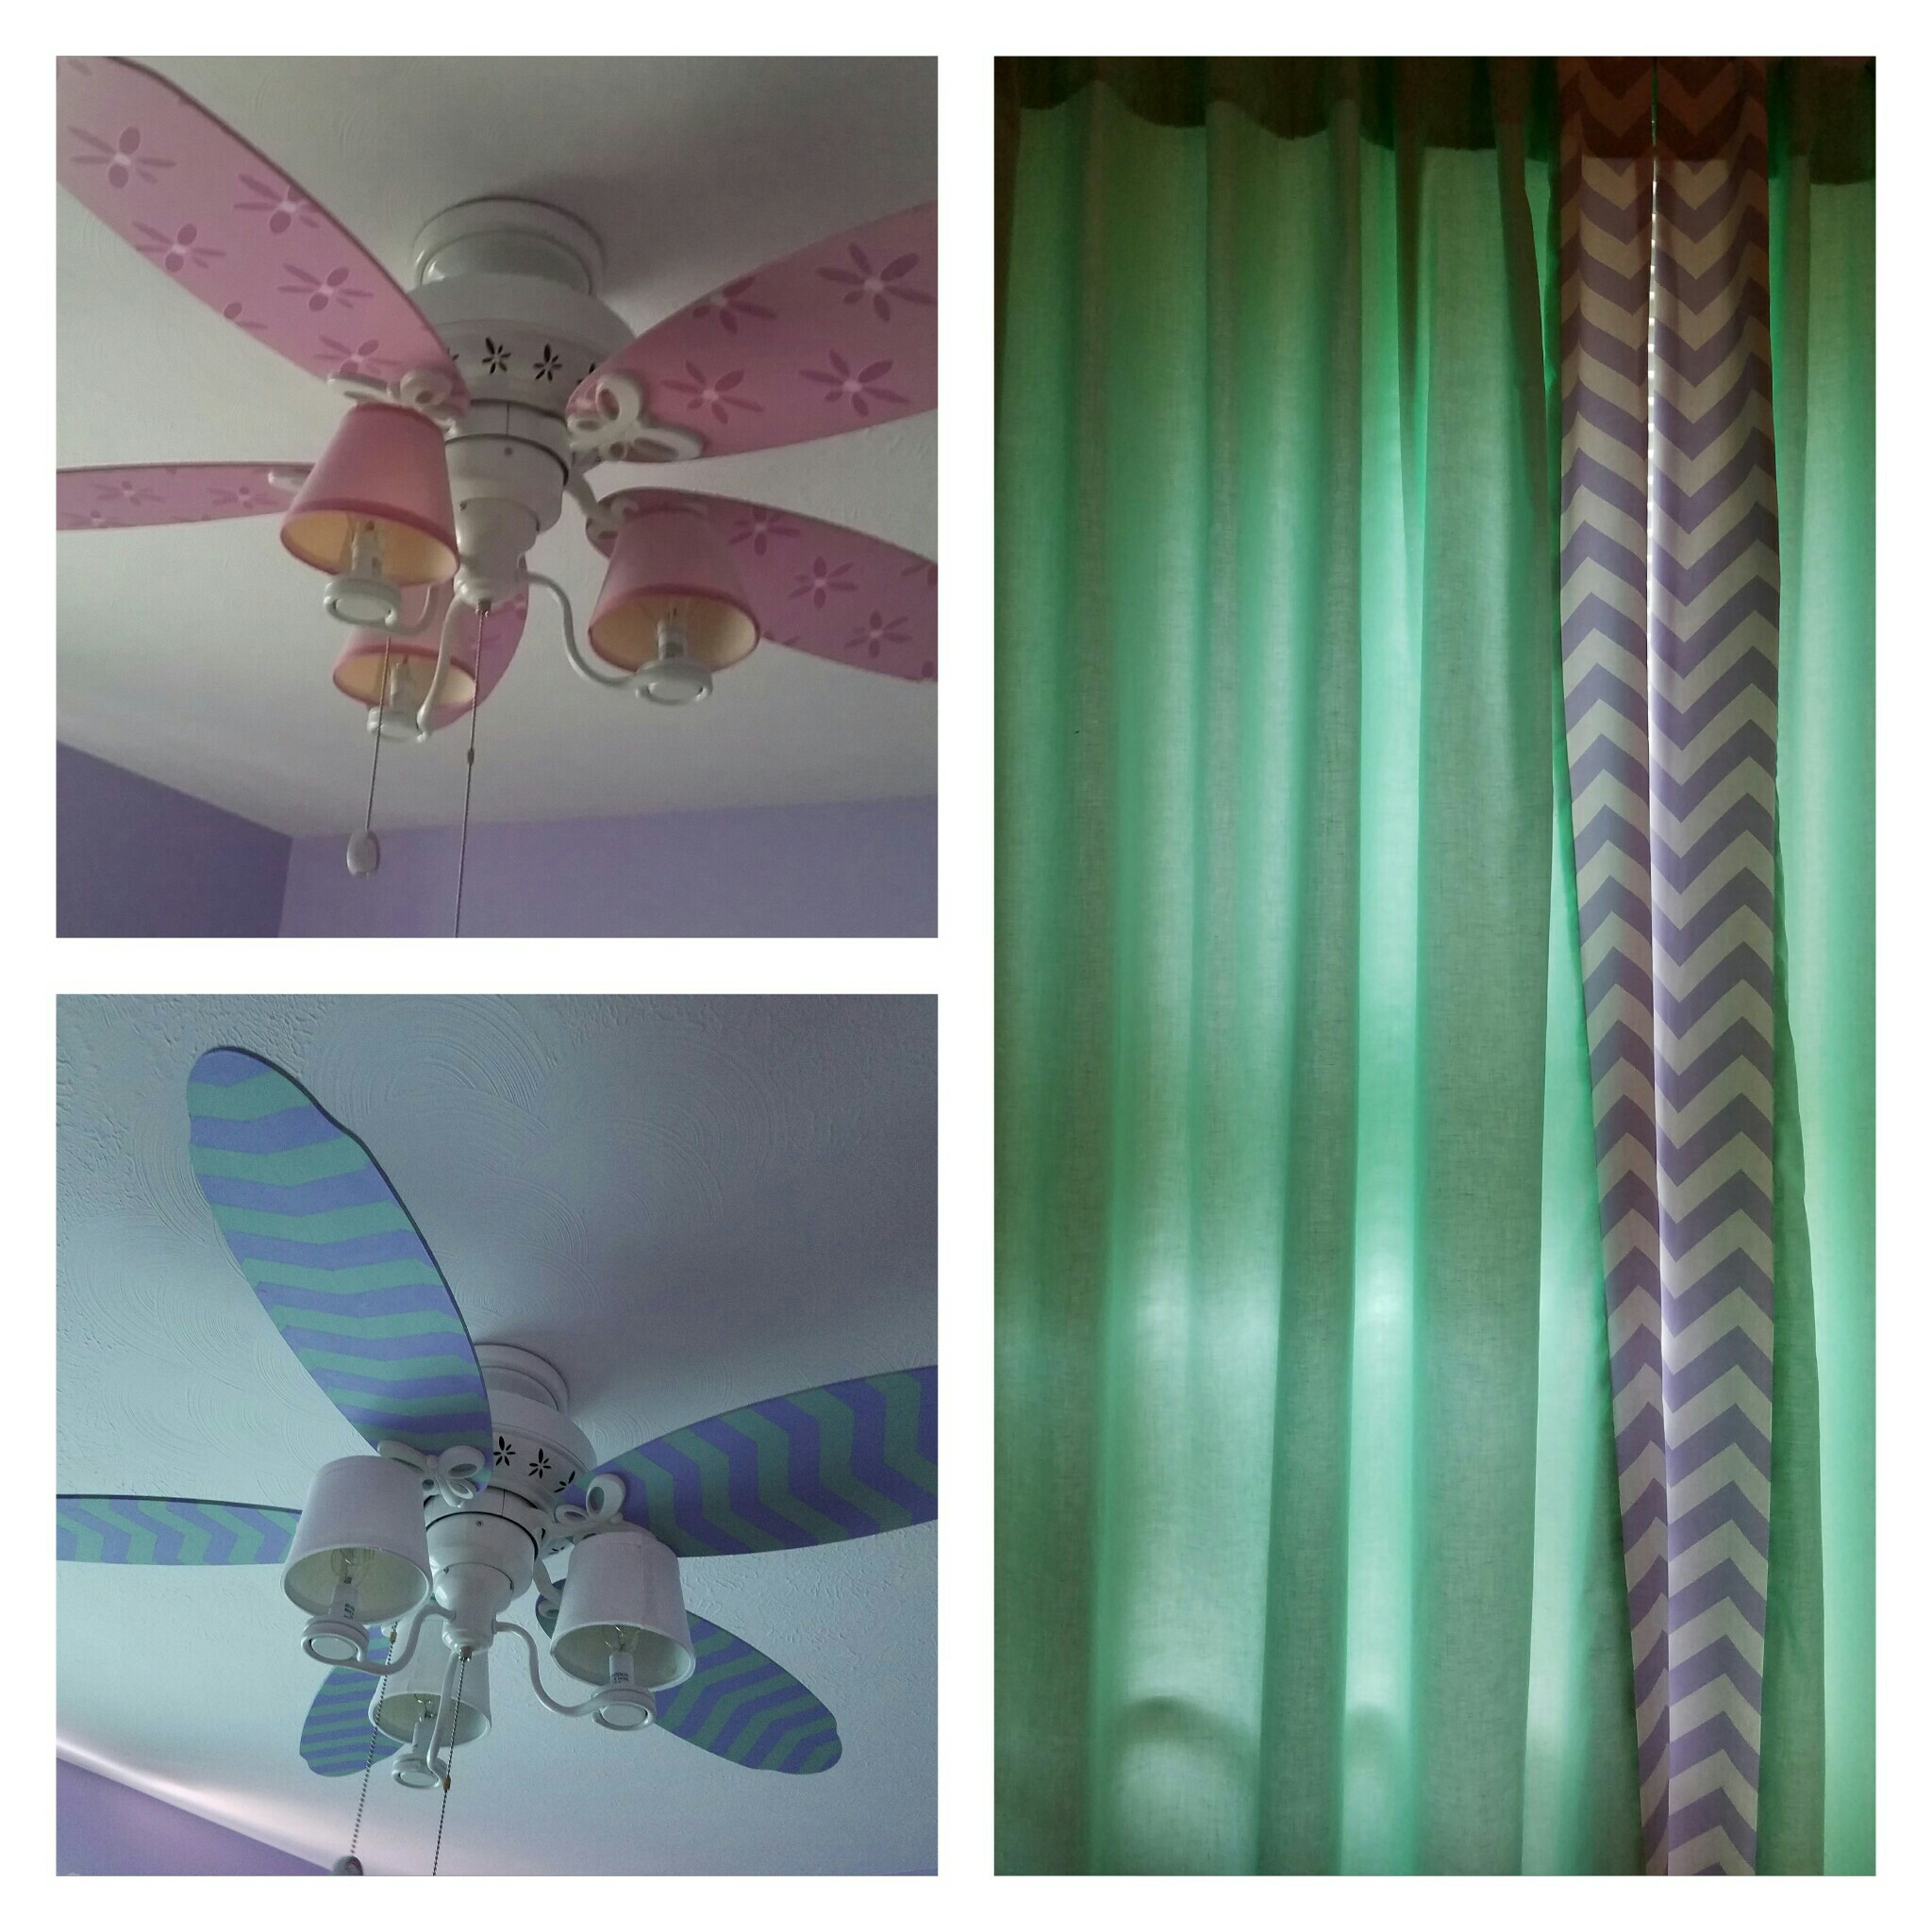 The ceiling fan got a makeover as well.  Previously pretty in pink flowers were replaced with a chevron pattern done in Mint Julep and Lucky Lavender, inspired by the colors in the curtains.  The homeowner replaced the shades on the fan with new white ones.